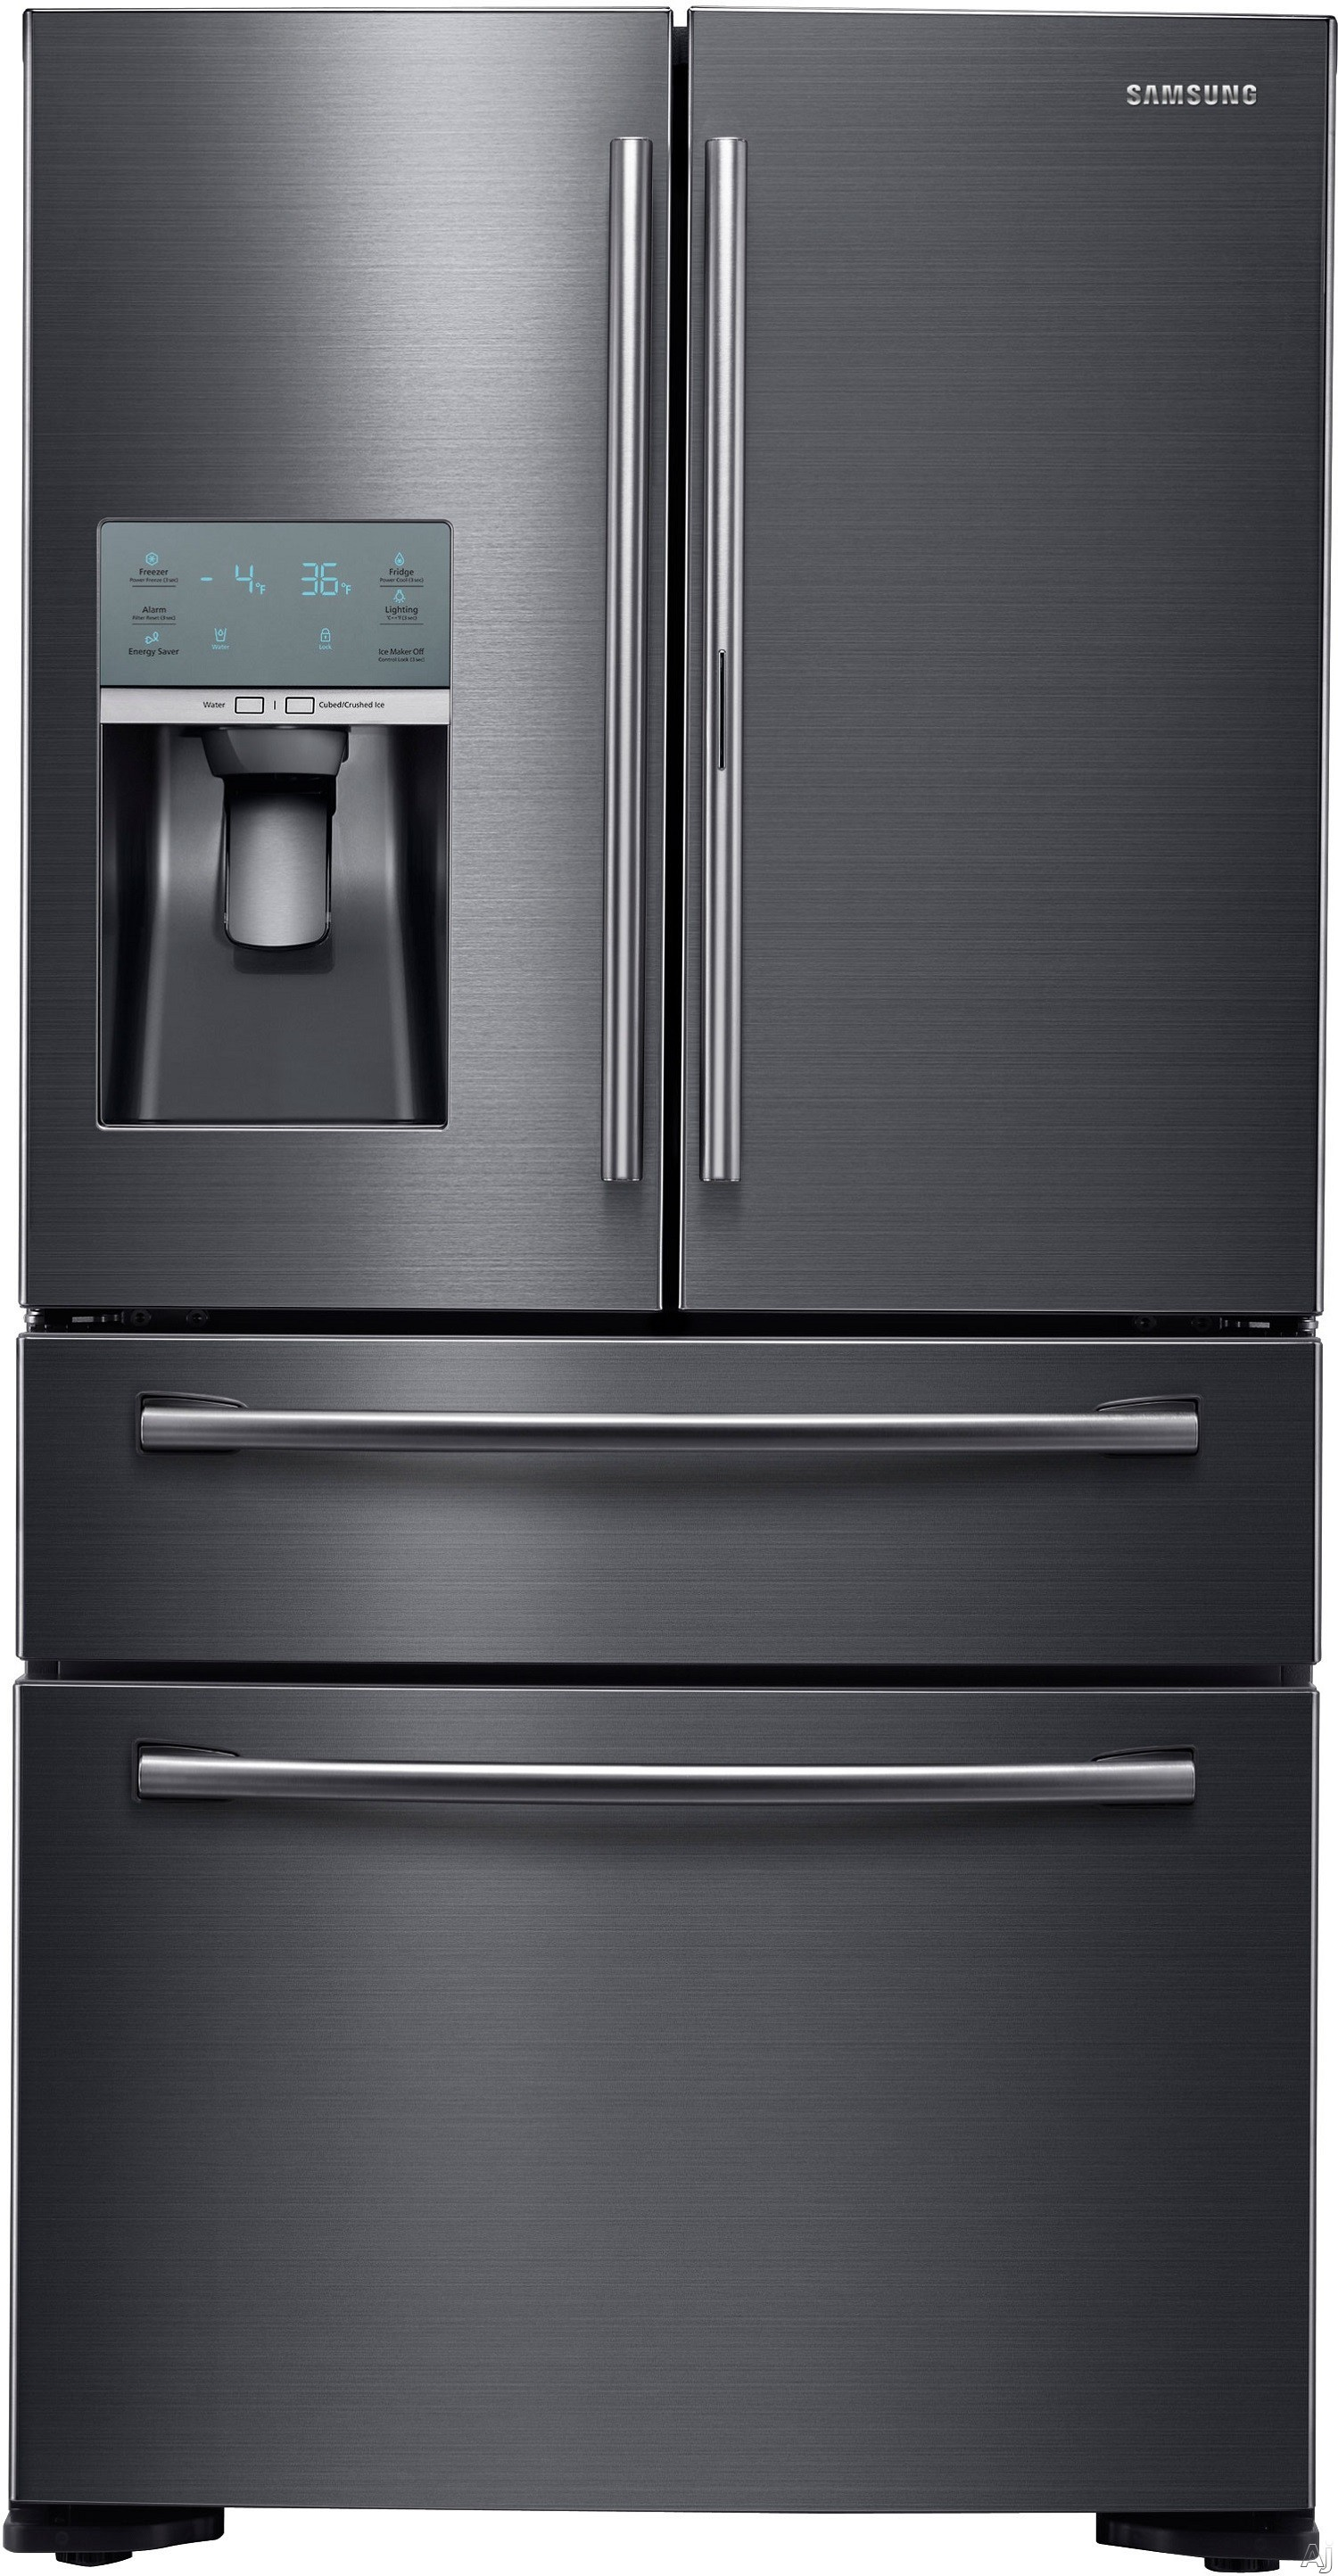 Samsung RF22KREDBSG 36 Inch Counter Depth 4-Door French Door Refrigerator with 4-Temperature FlexZone Drawer, Food Showcase Door, Twin Cooling Plus, 22.4 cu. ft. Total Capacity, Large Freezer Drawer, Ice Master Ice Maker and External Water/Ice Dispenser: Black Stainless Stee